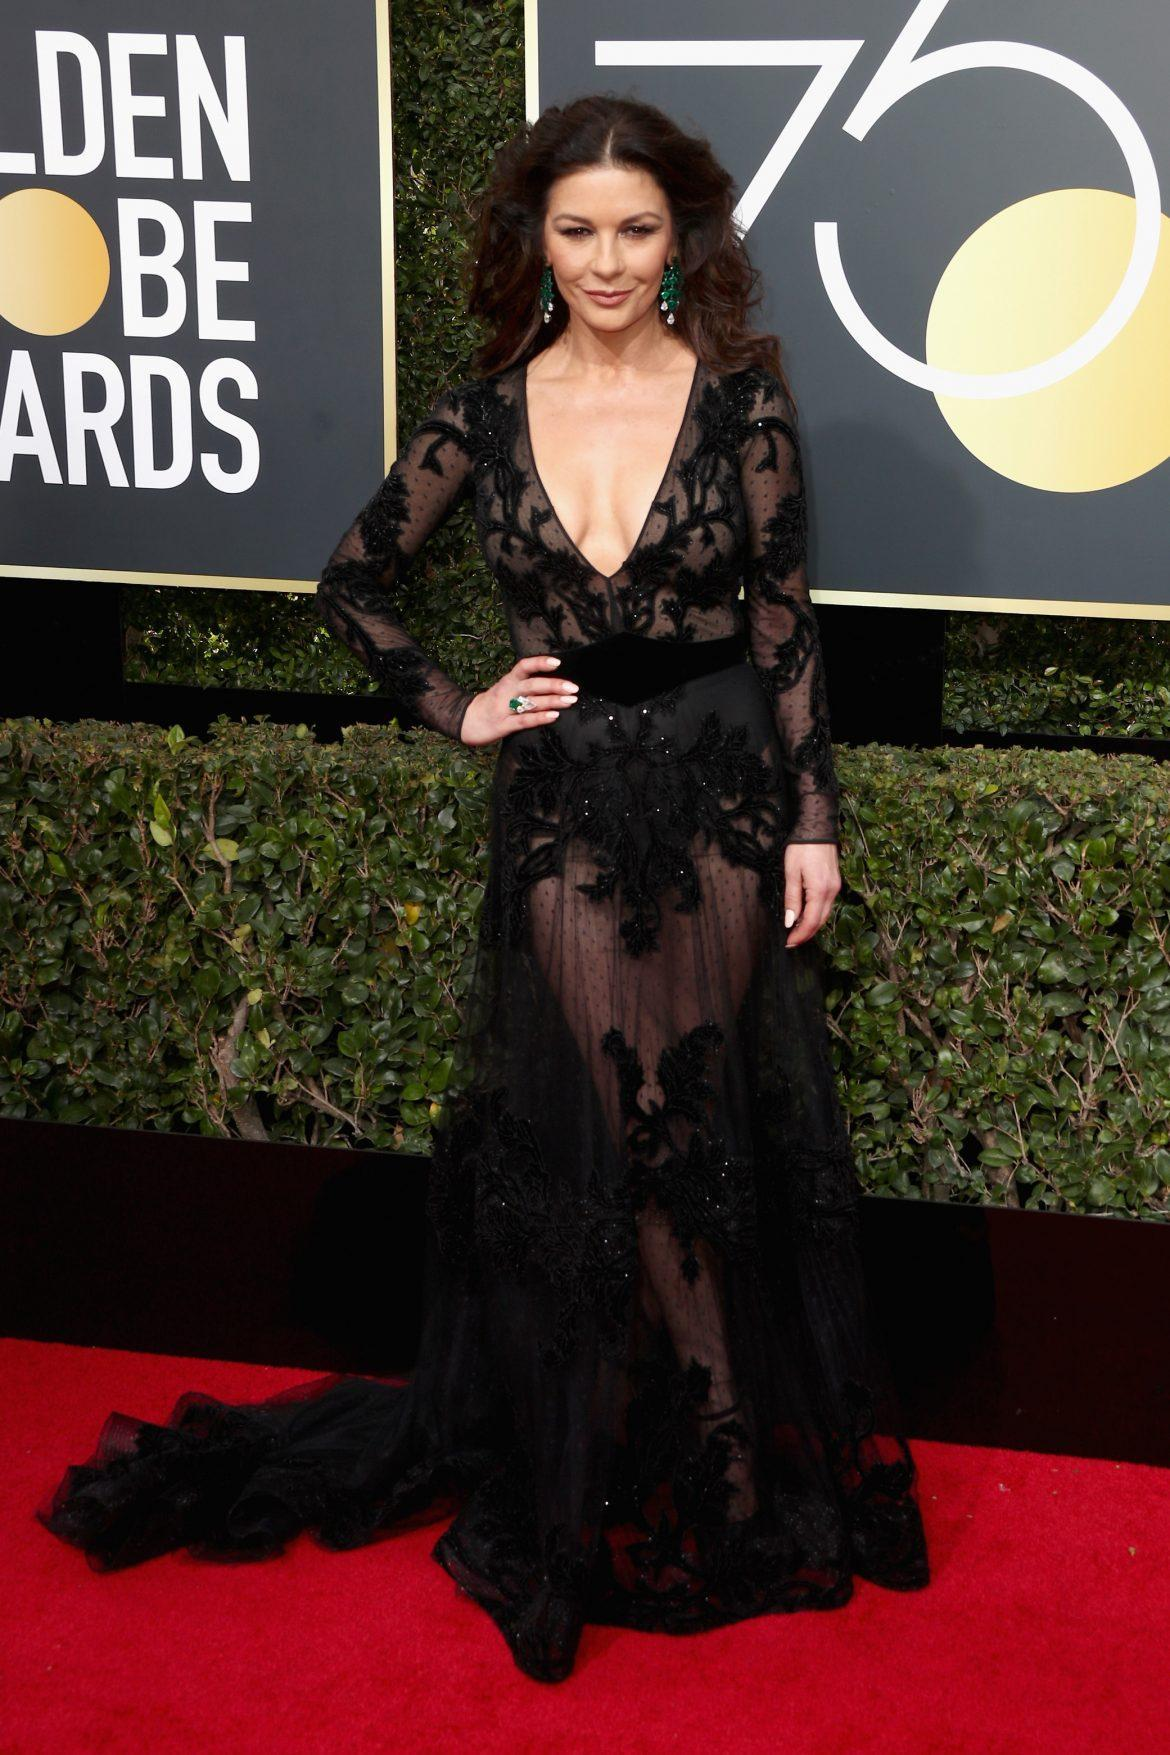 71 Stunning Black Dresses From the Golden Globes Red Carpet